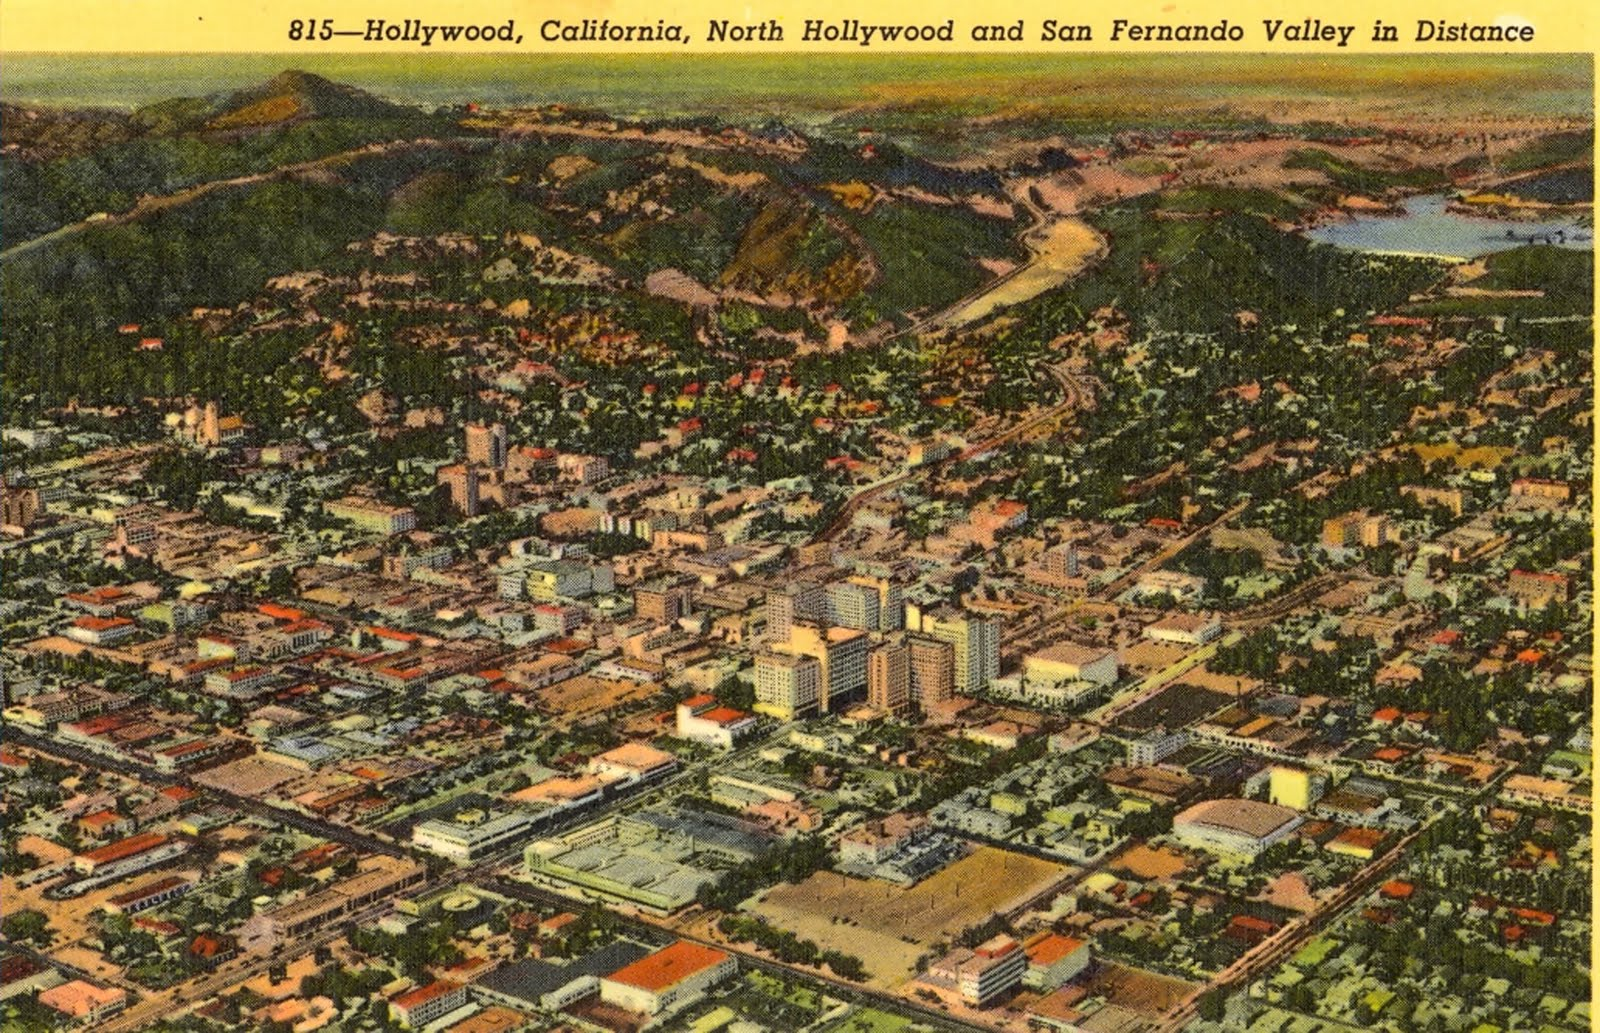 The Museum of the San Fernando Valley: VIEW OF THE VALLEY